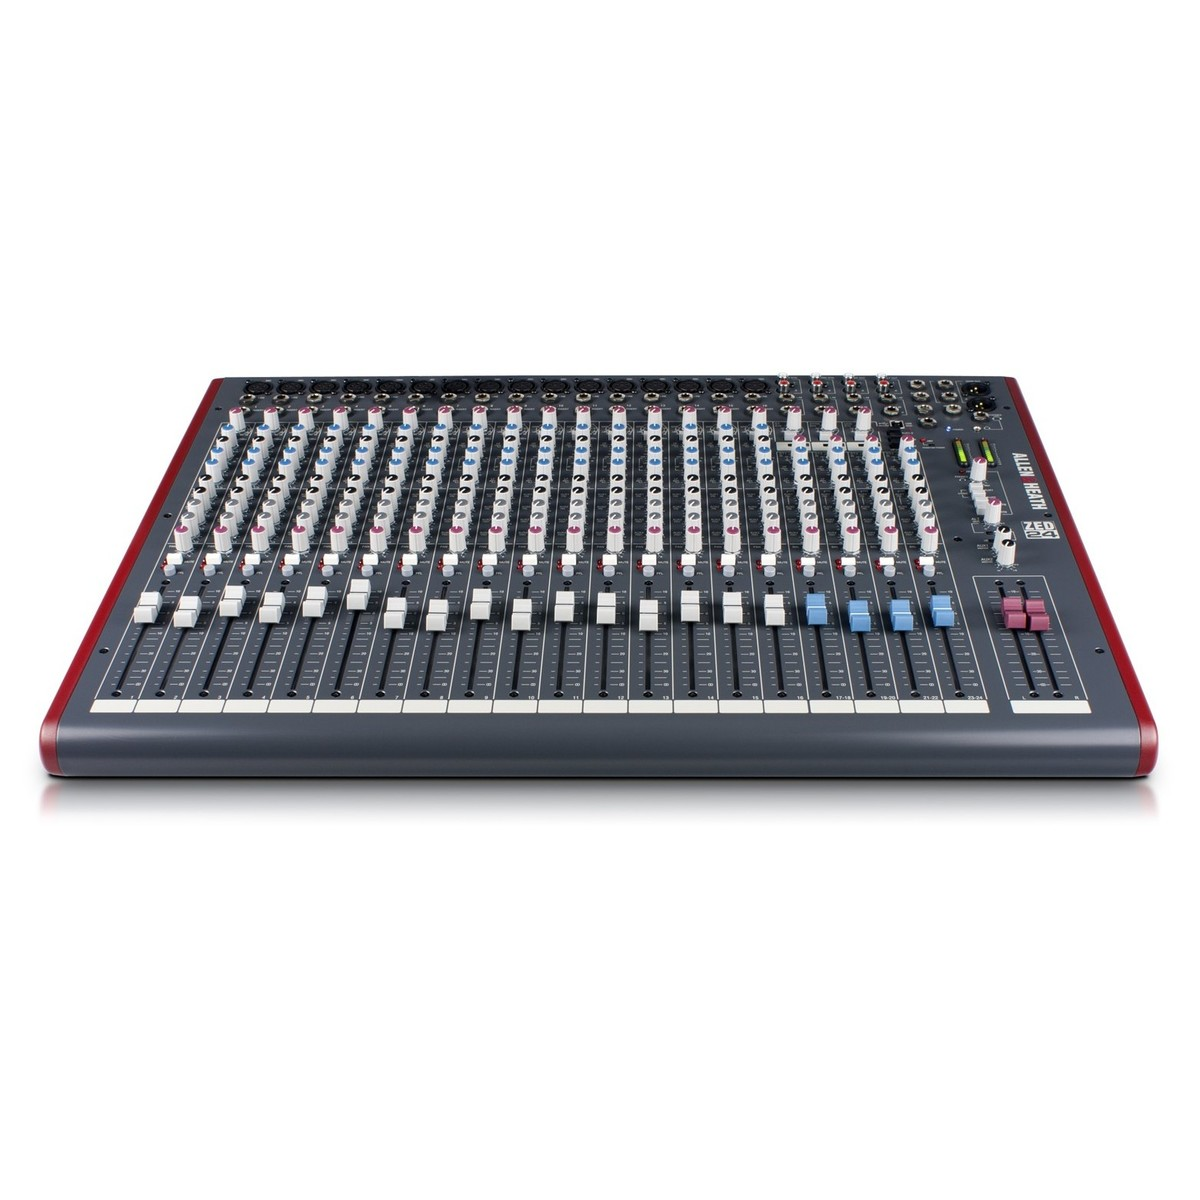 allen and heath zed 24 usb stereo mixer b stock at gear4music. Black Bedroom Furniture Sets. Home Design Ideas